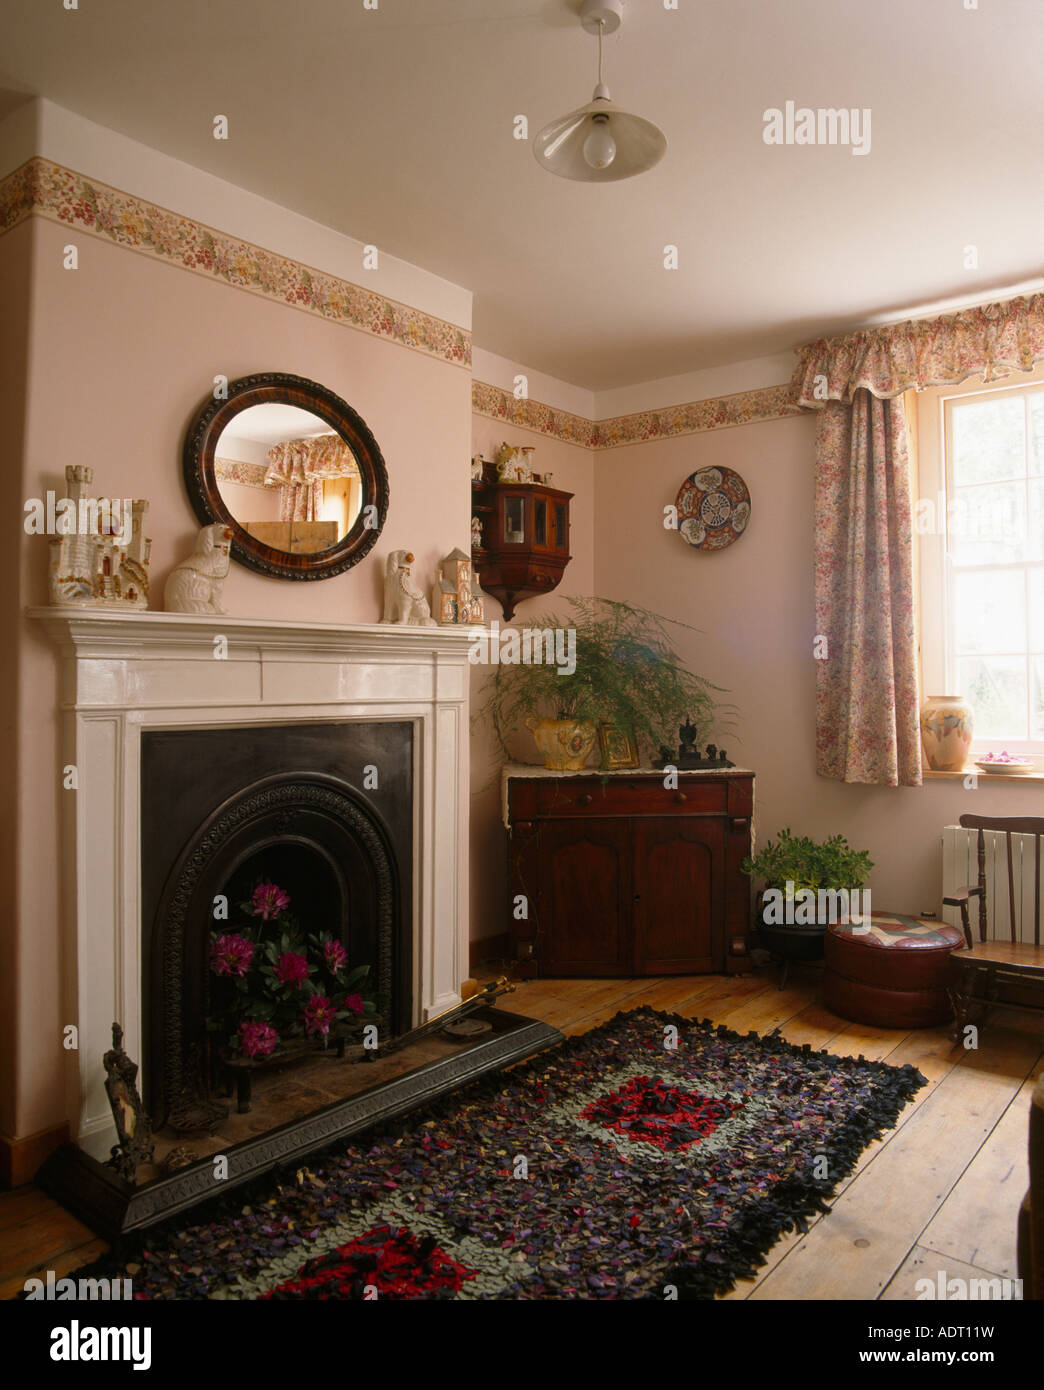 living room border light fixture ideas rag rug in front of fireplace small livingroom with wallpaper